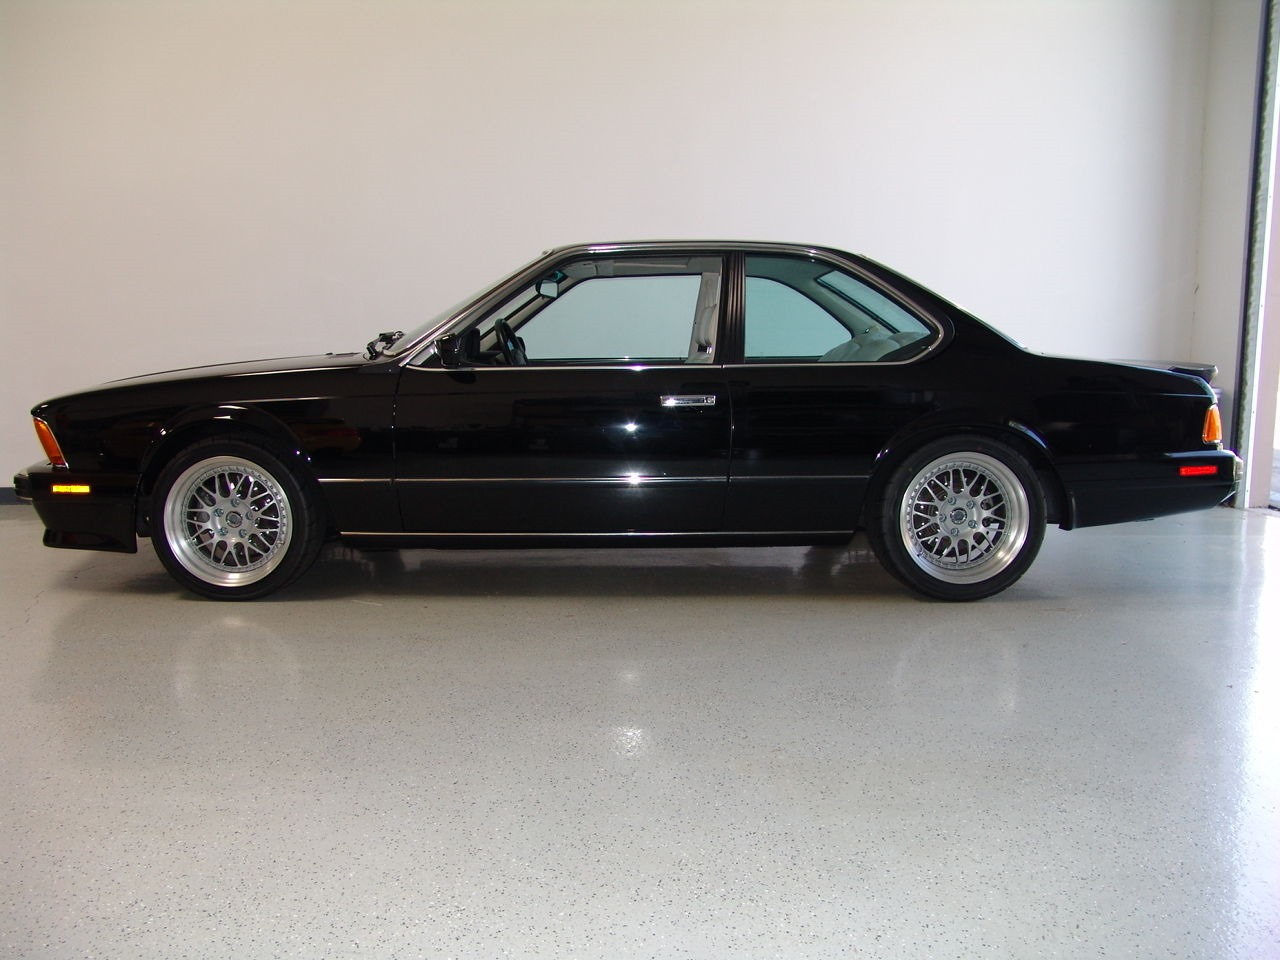 1988 bmw e24 m6 for sale priced at usd158 800 autoevolution. Black Bedroom Furniture Sets. Home Design Ideas